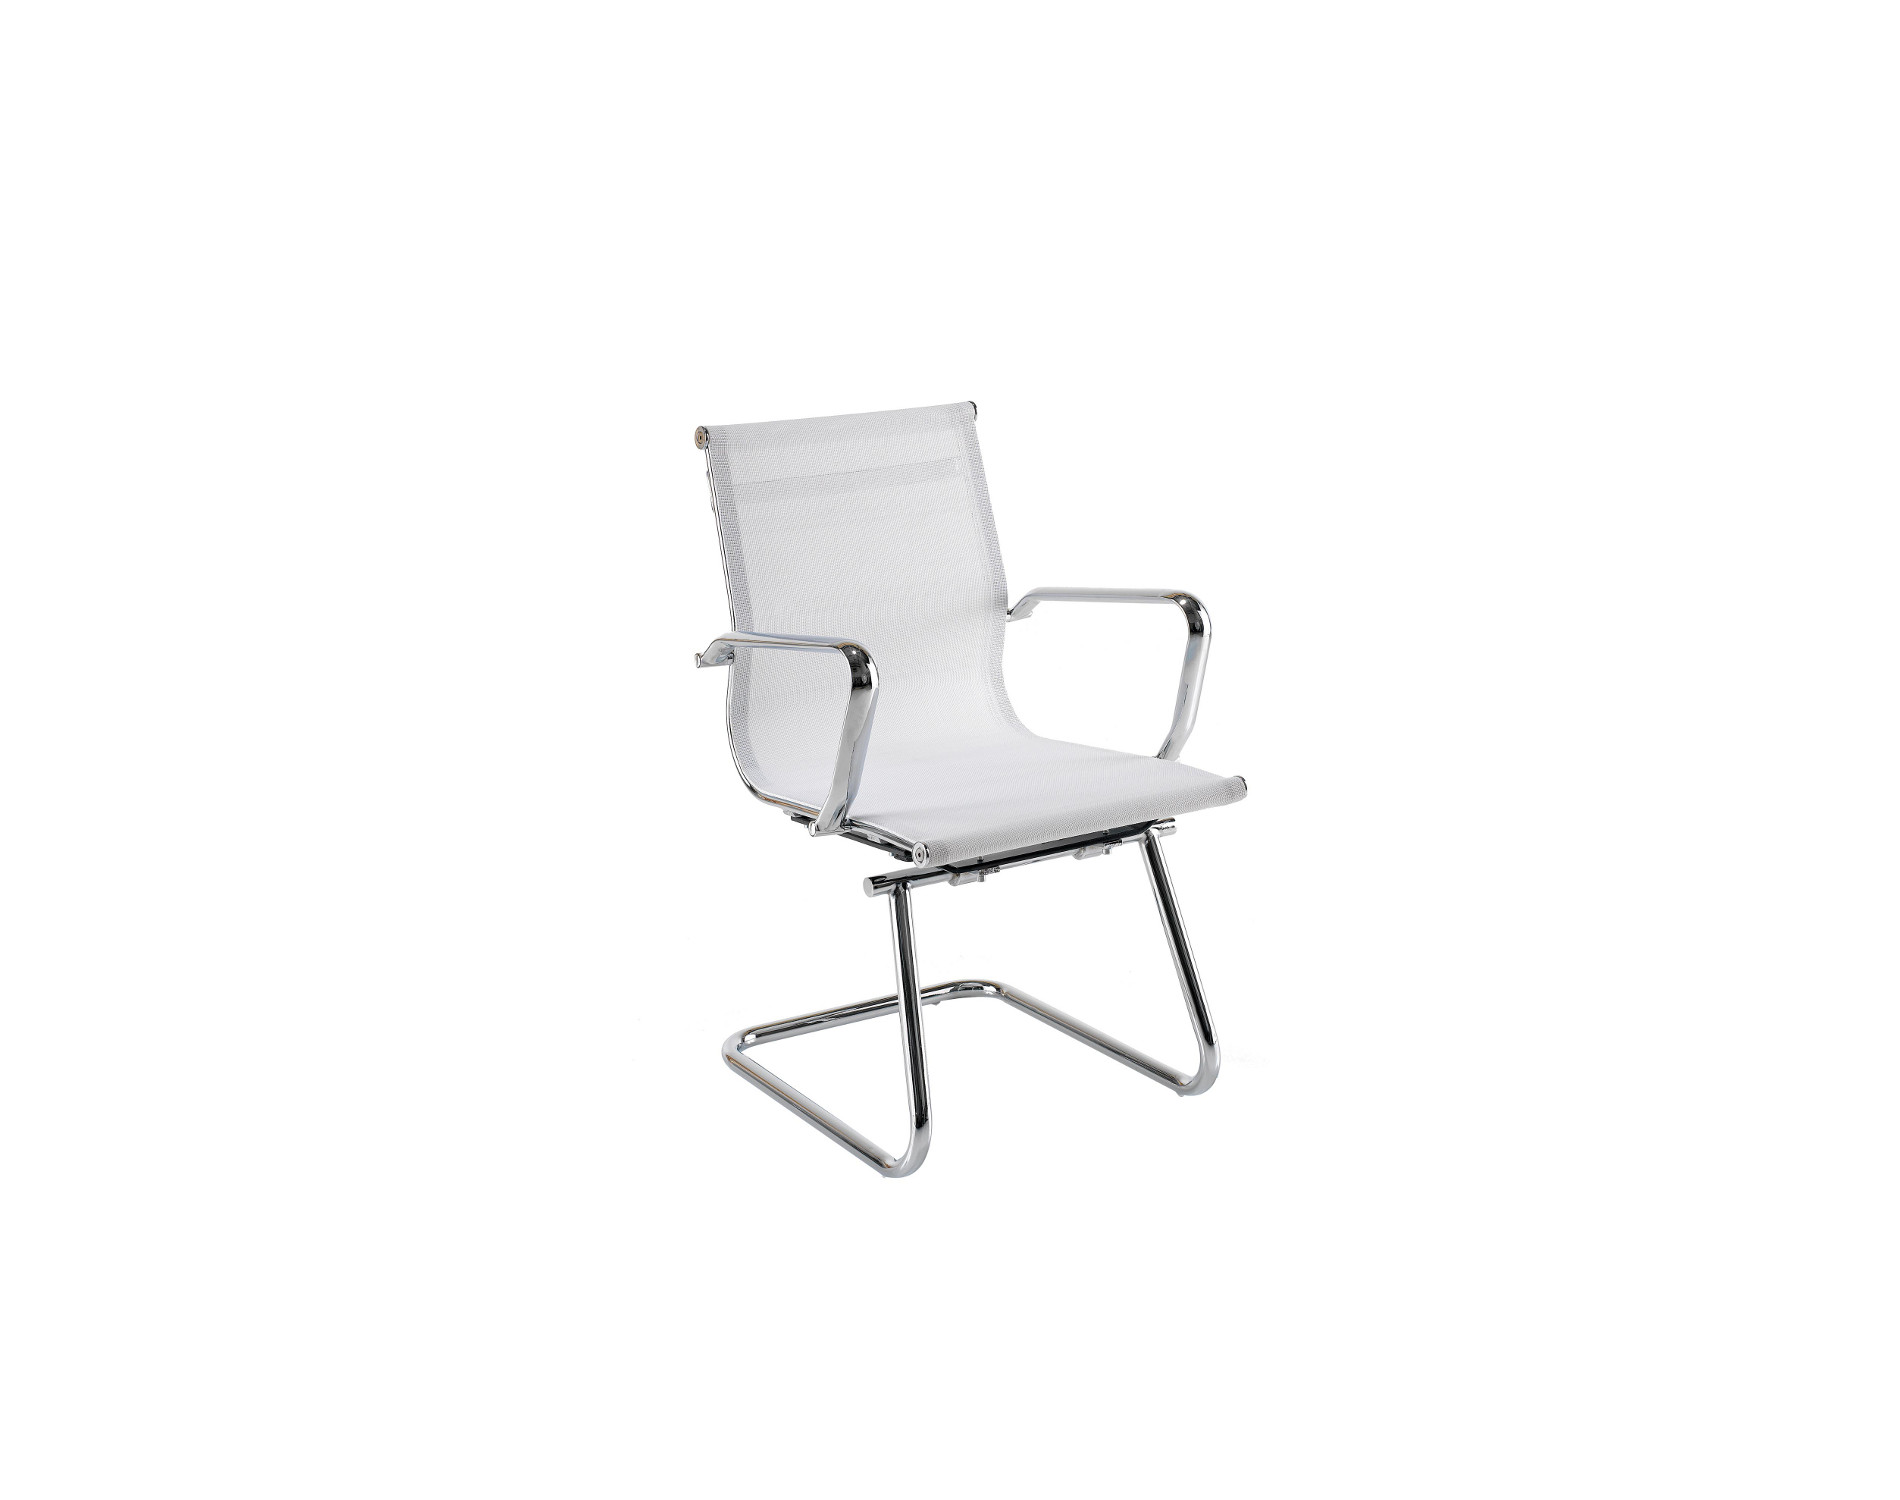 white mesh office chair uk dancer on executive seating with medium or high back and chrome frame